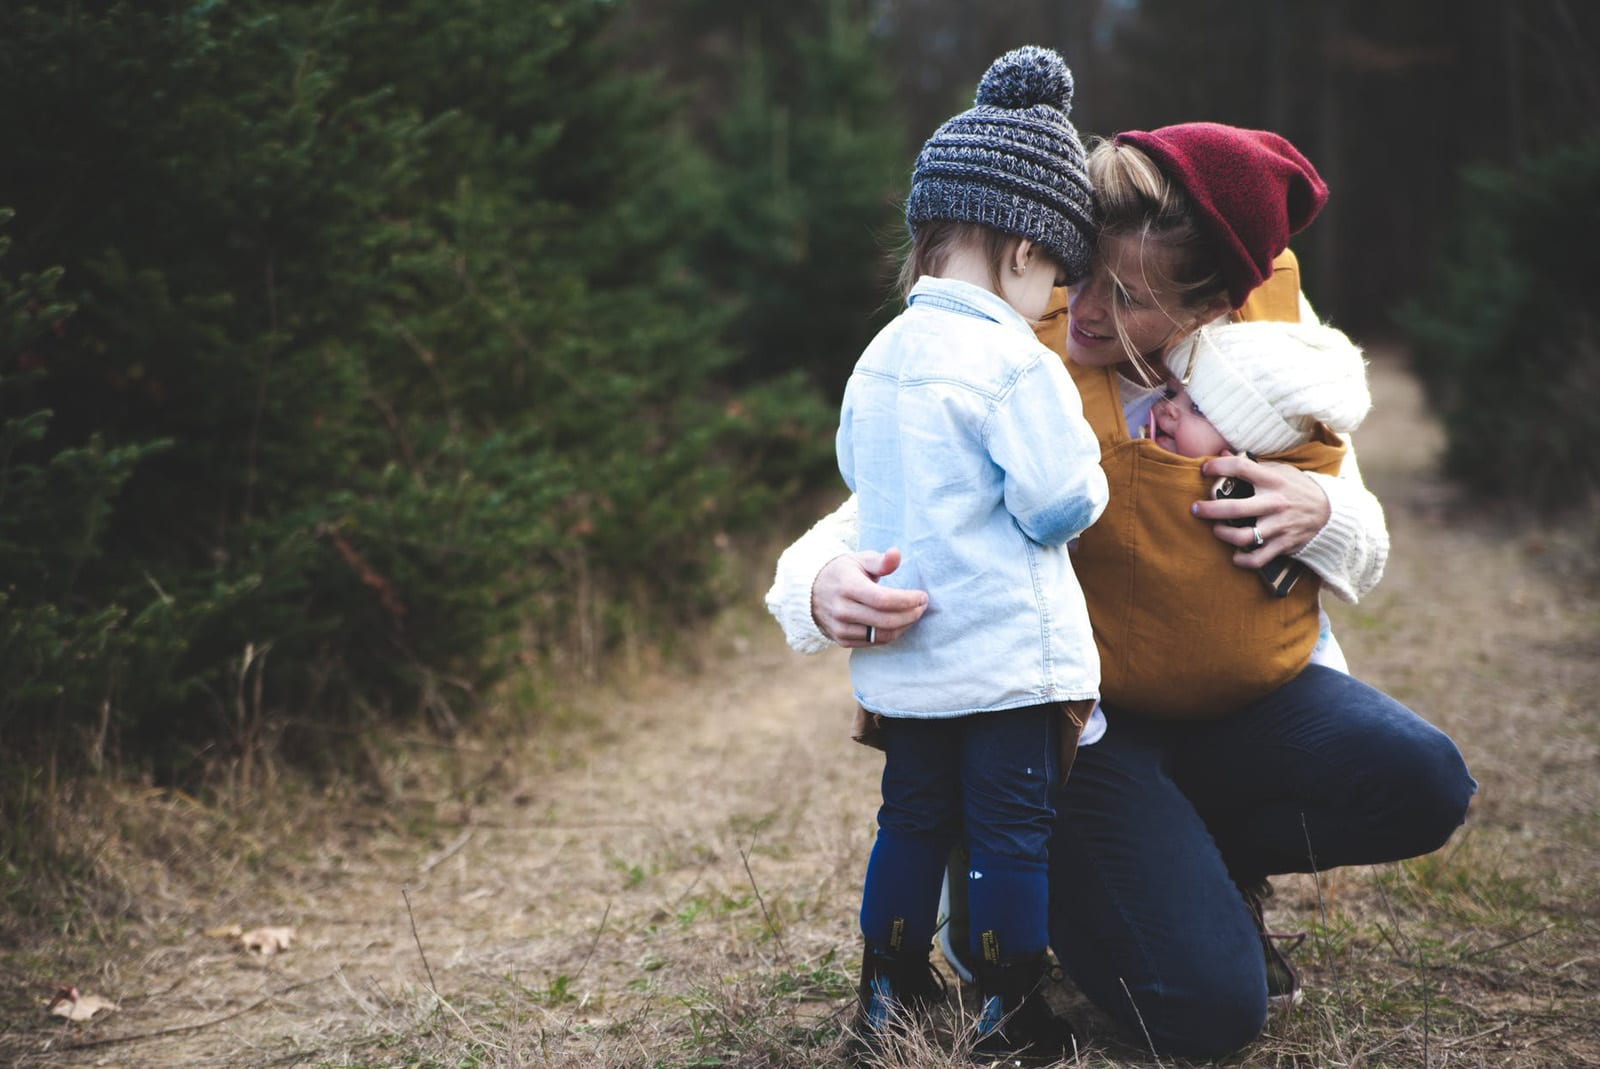 Mother comforting child and holding baby while outside walking amongst trees, Di Beard Personal Coaching